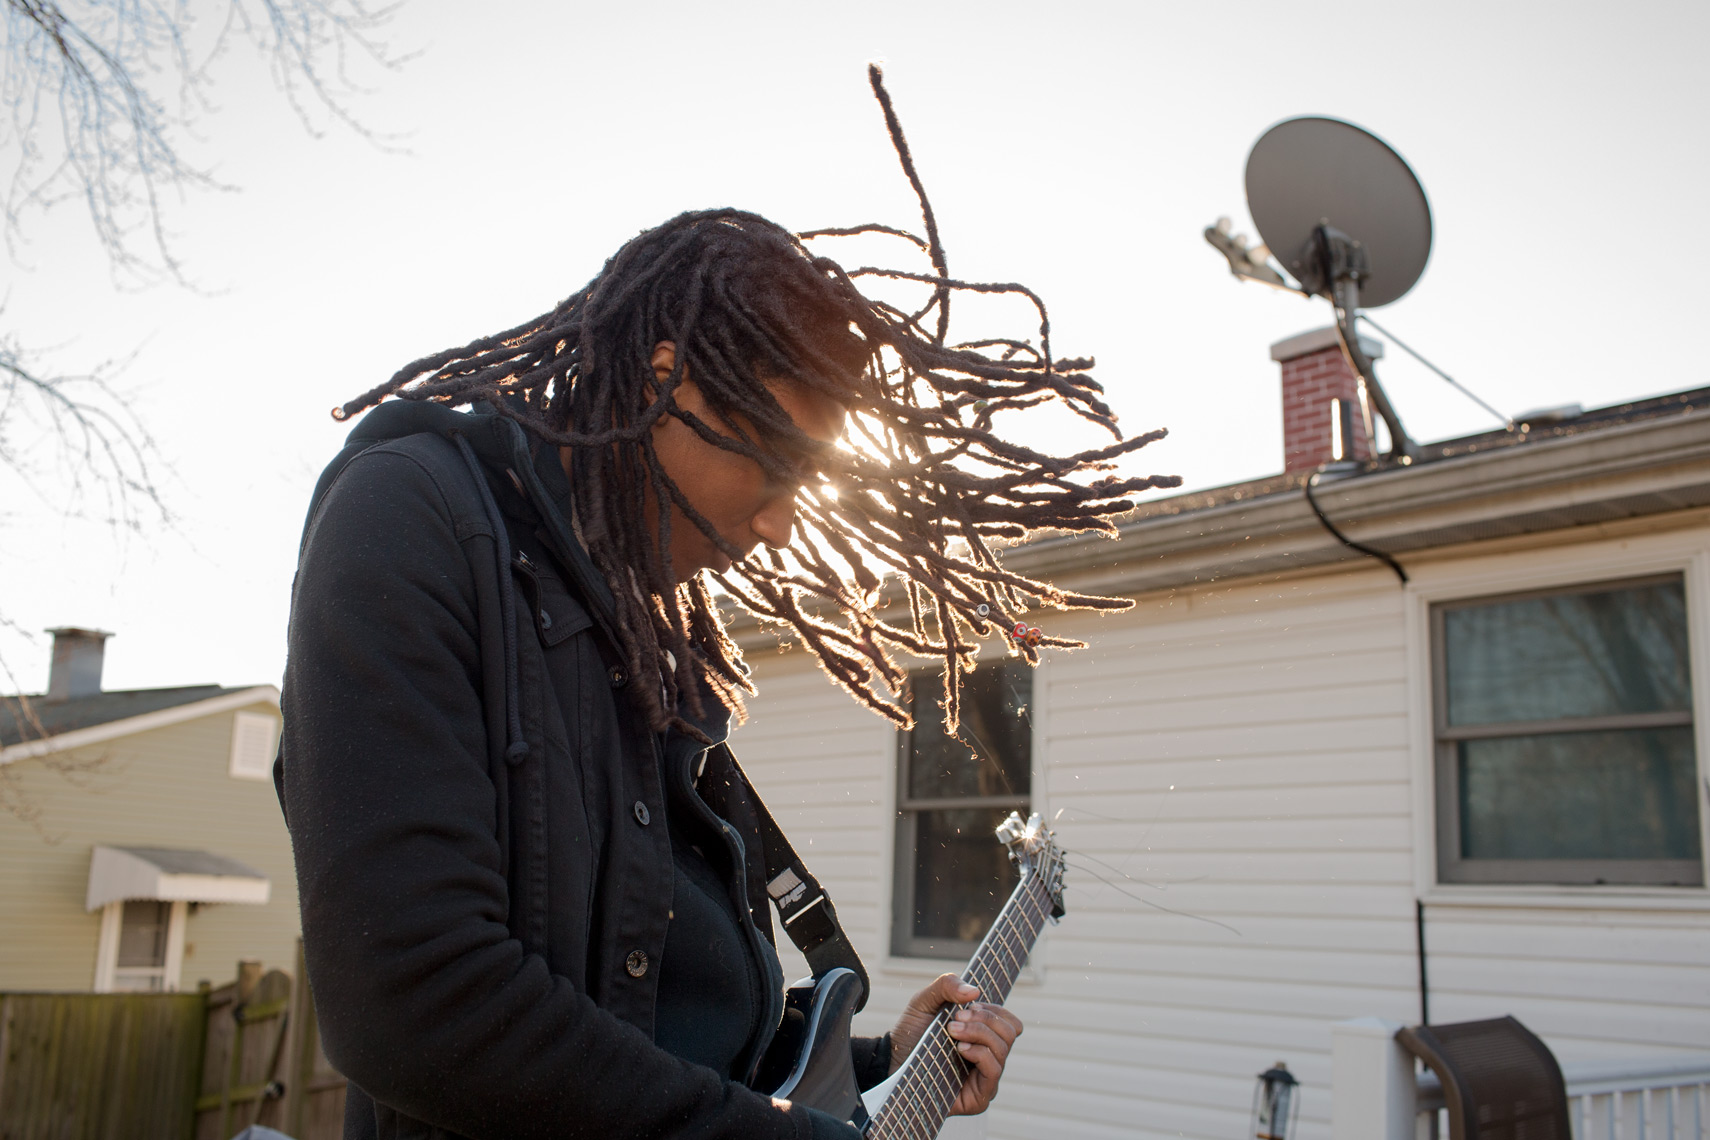 dreadlocks thrashing while teenage boy plays guitar for washington dc commercial photography